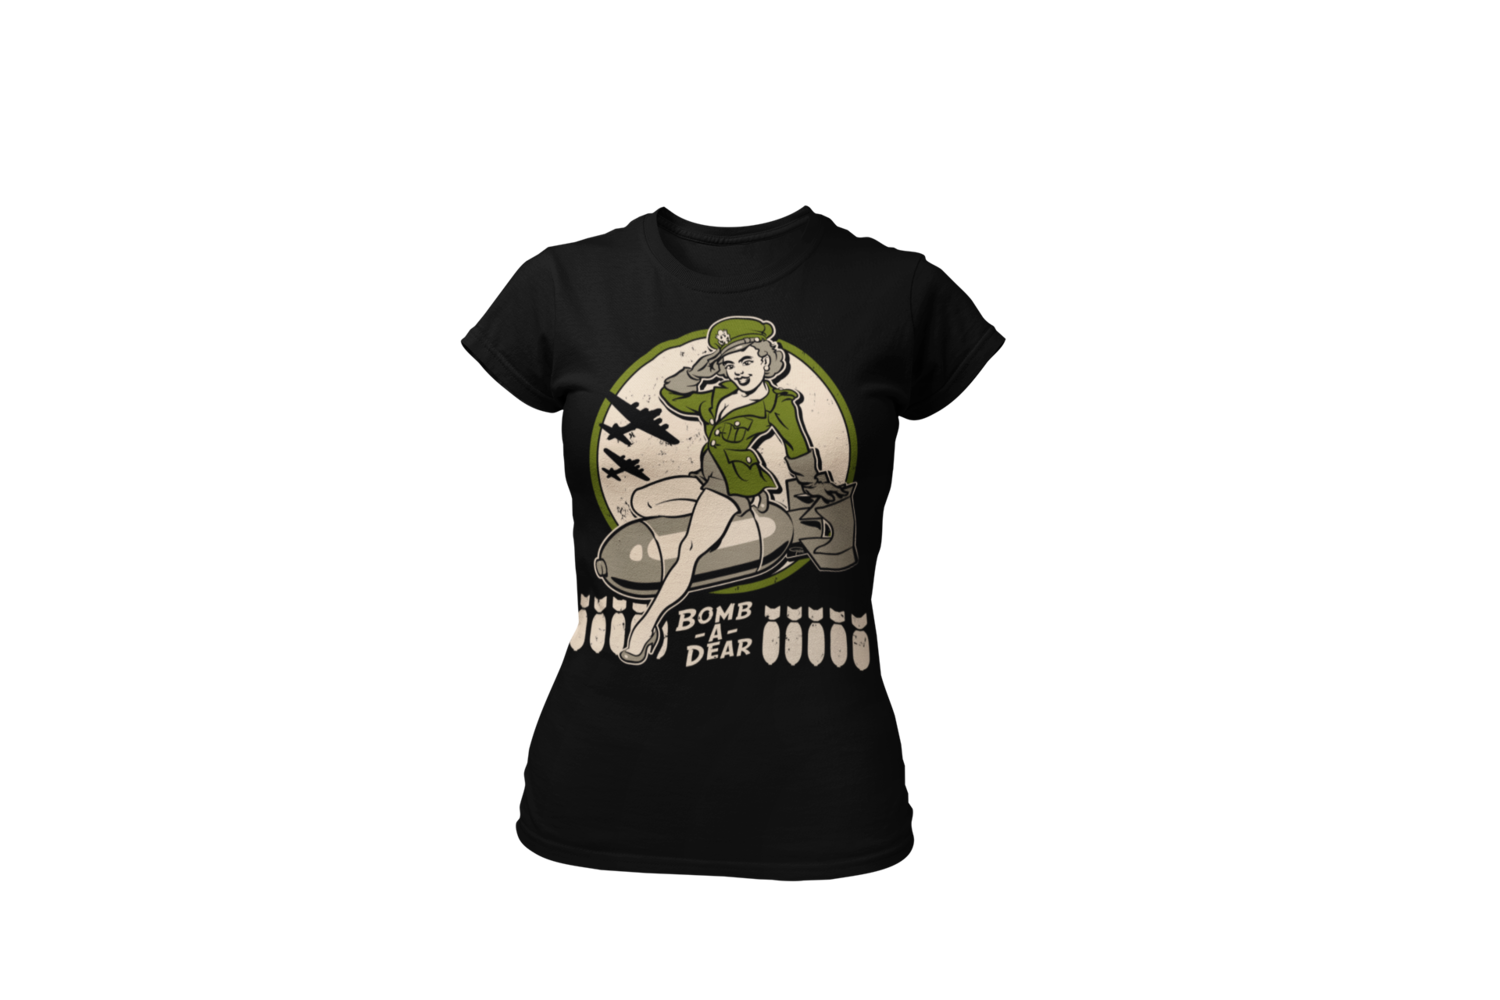 """BOMB A DEAR T-SHIRT WOMAN by Ger """"Dutch Courage"""" Peters artwork"""